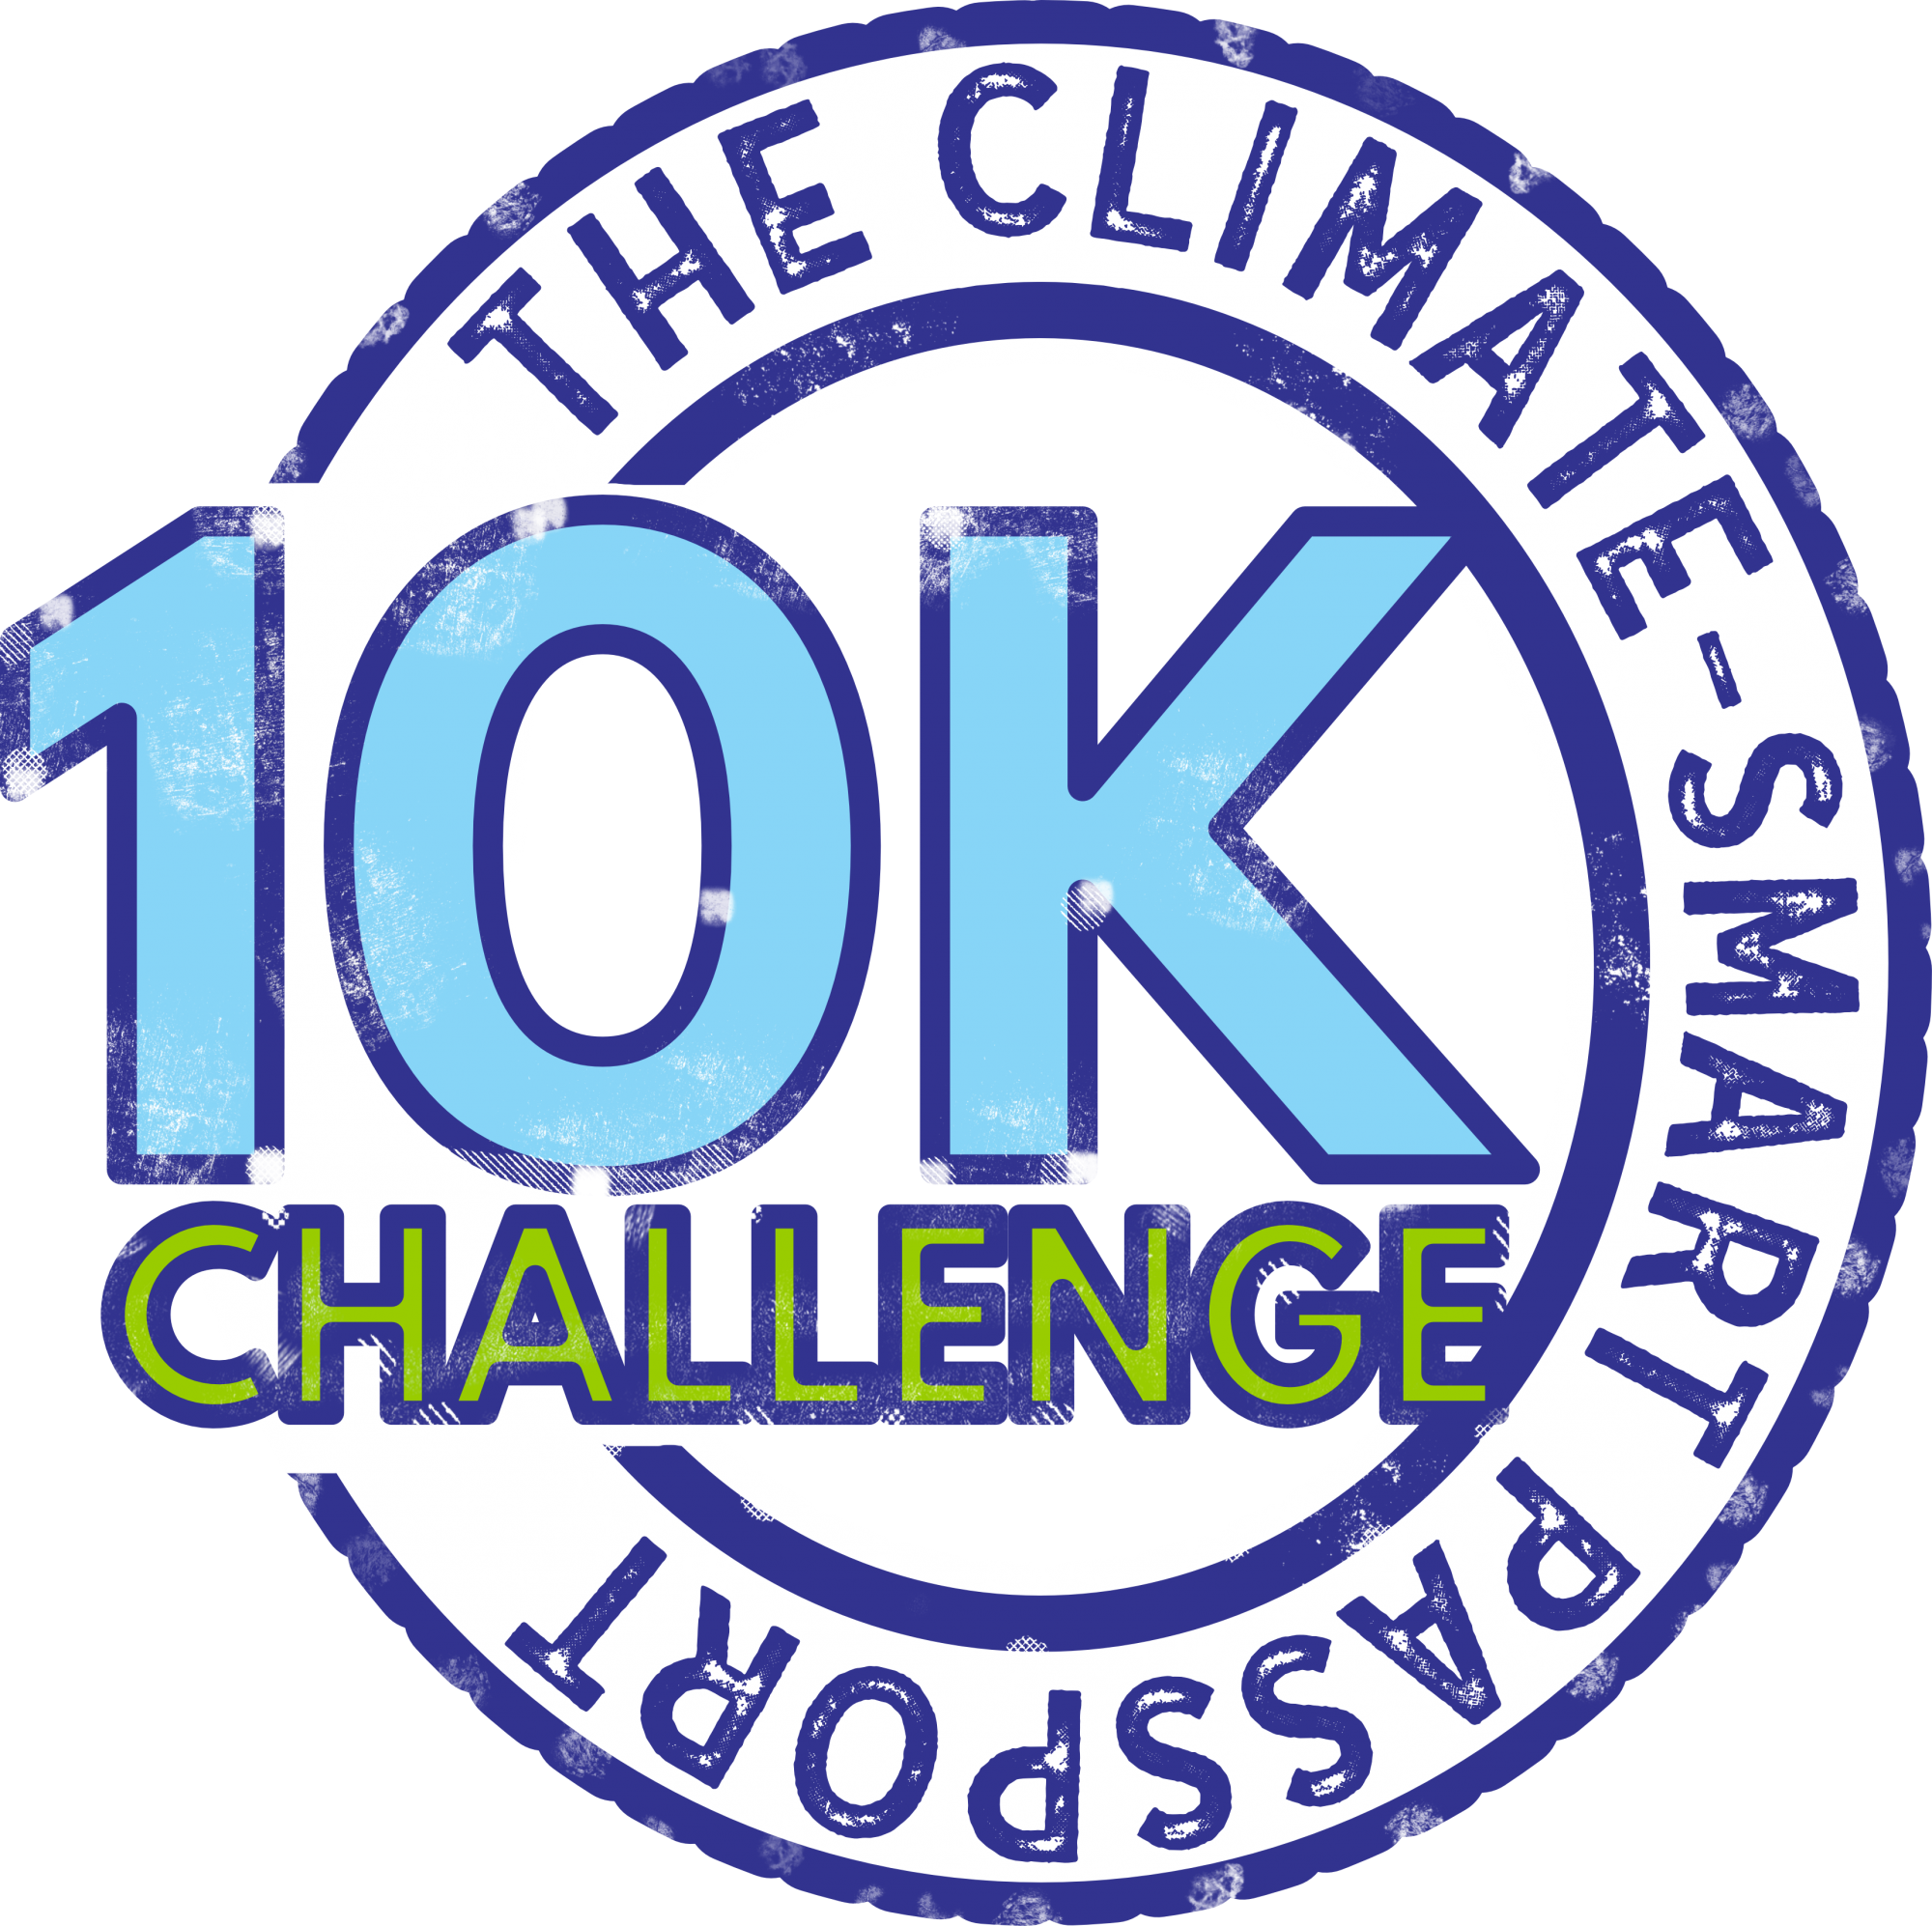 link to 10k challenge